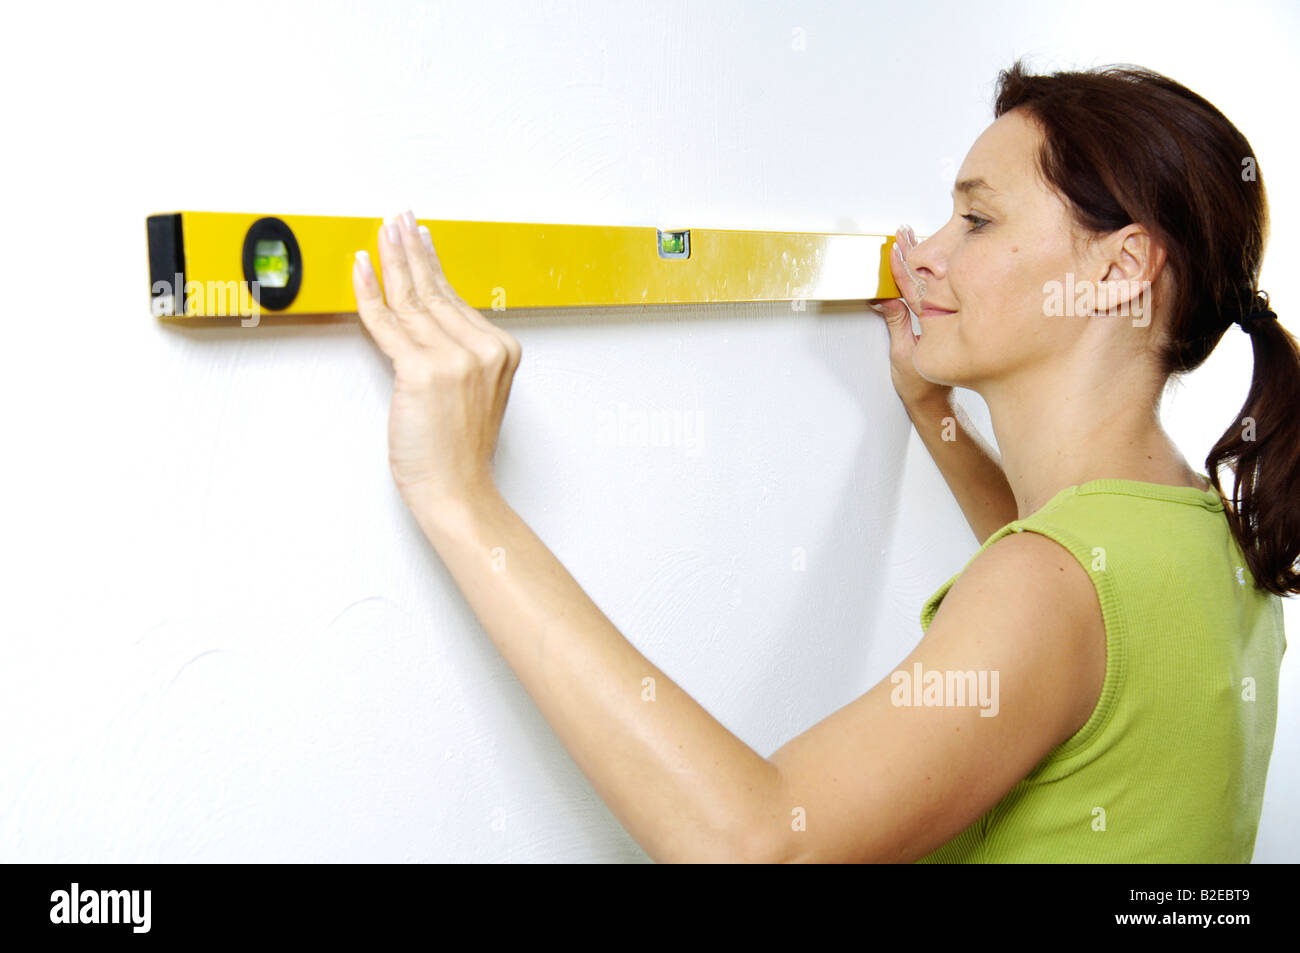 Close-up of woman using spirit level on wall - Stock Image